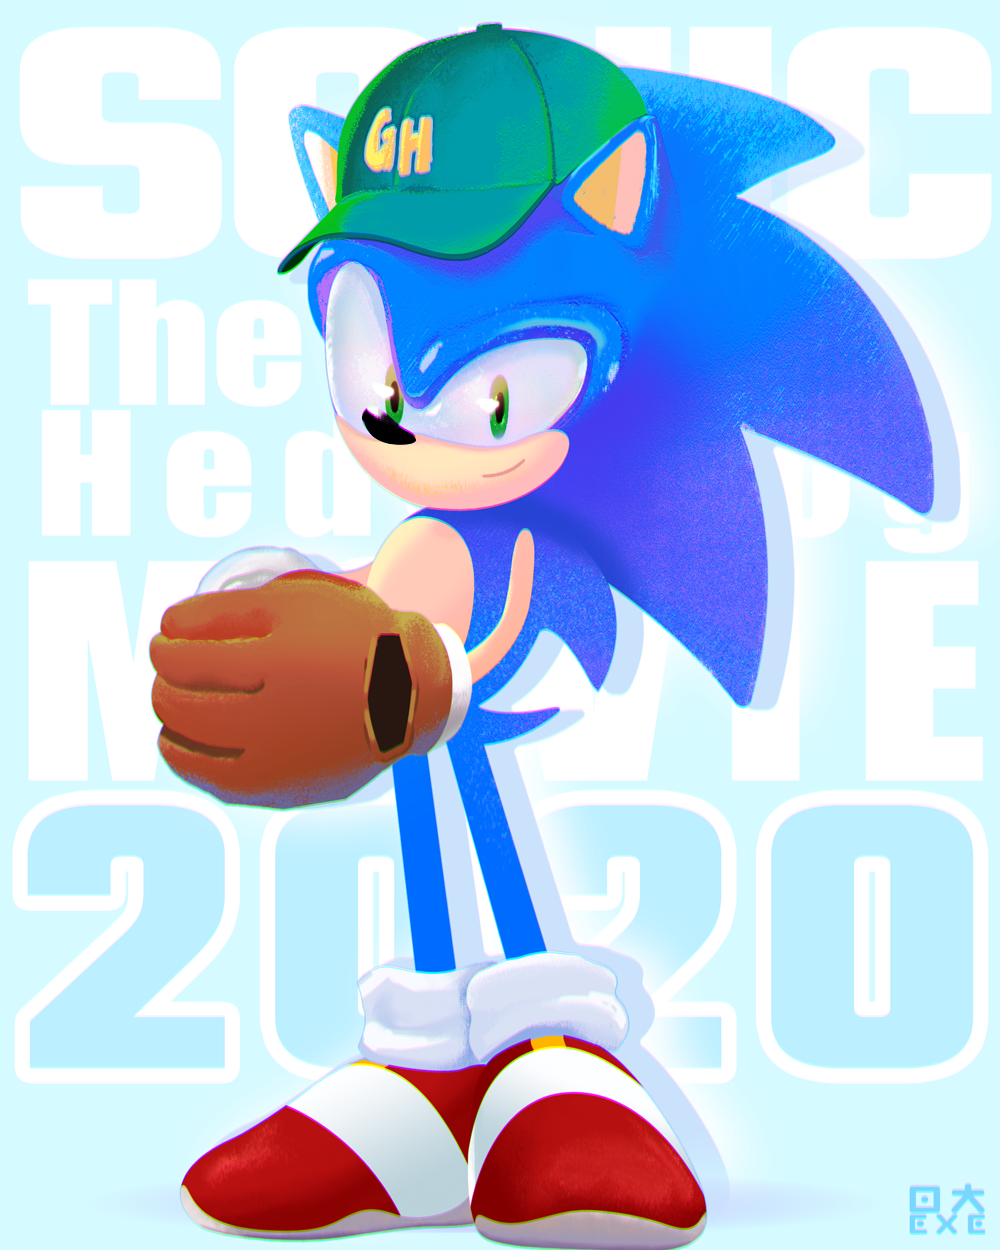 Sonic The Hedgehog Movie 2020 February By Epigastrium Exe On Deviantart